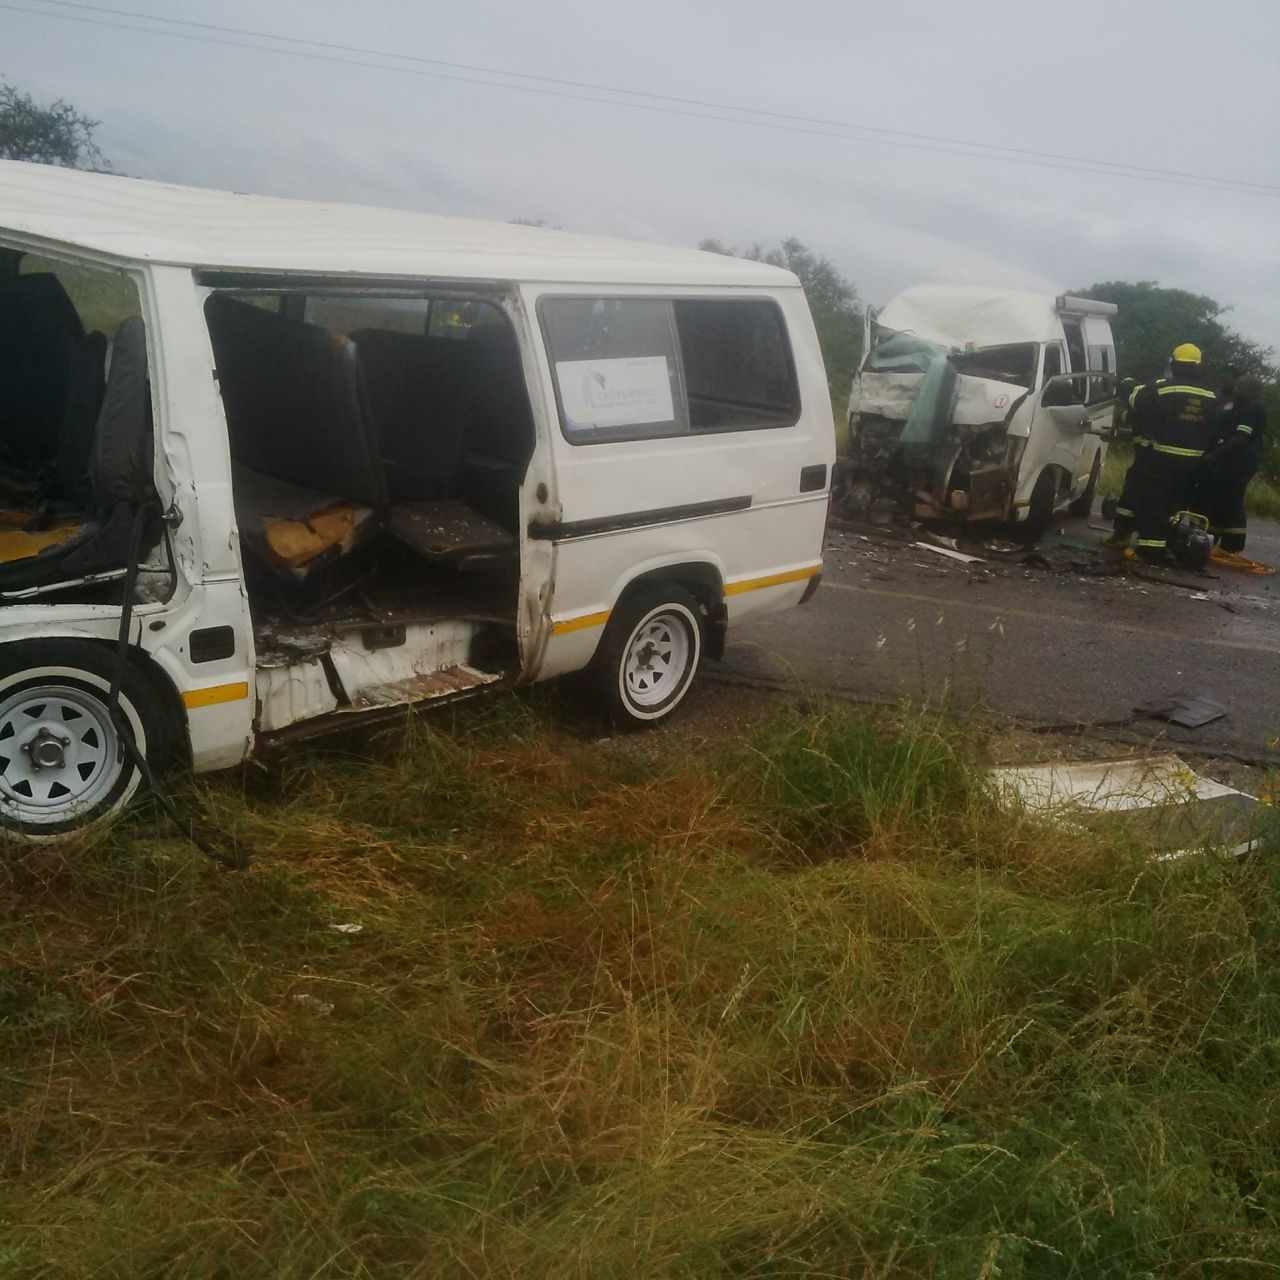 Two taxis collide injuring 16, Musina